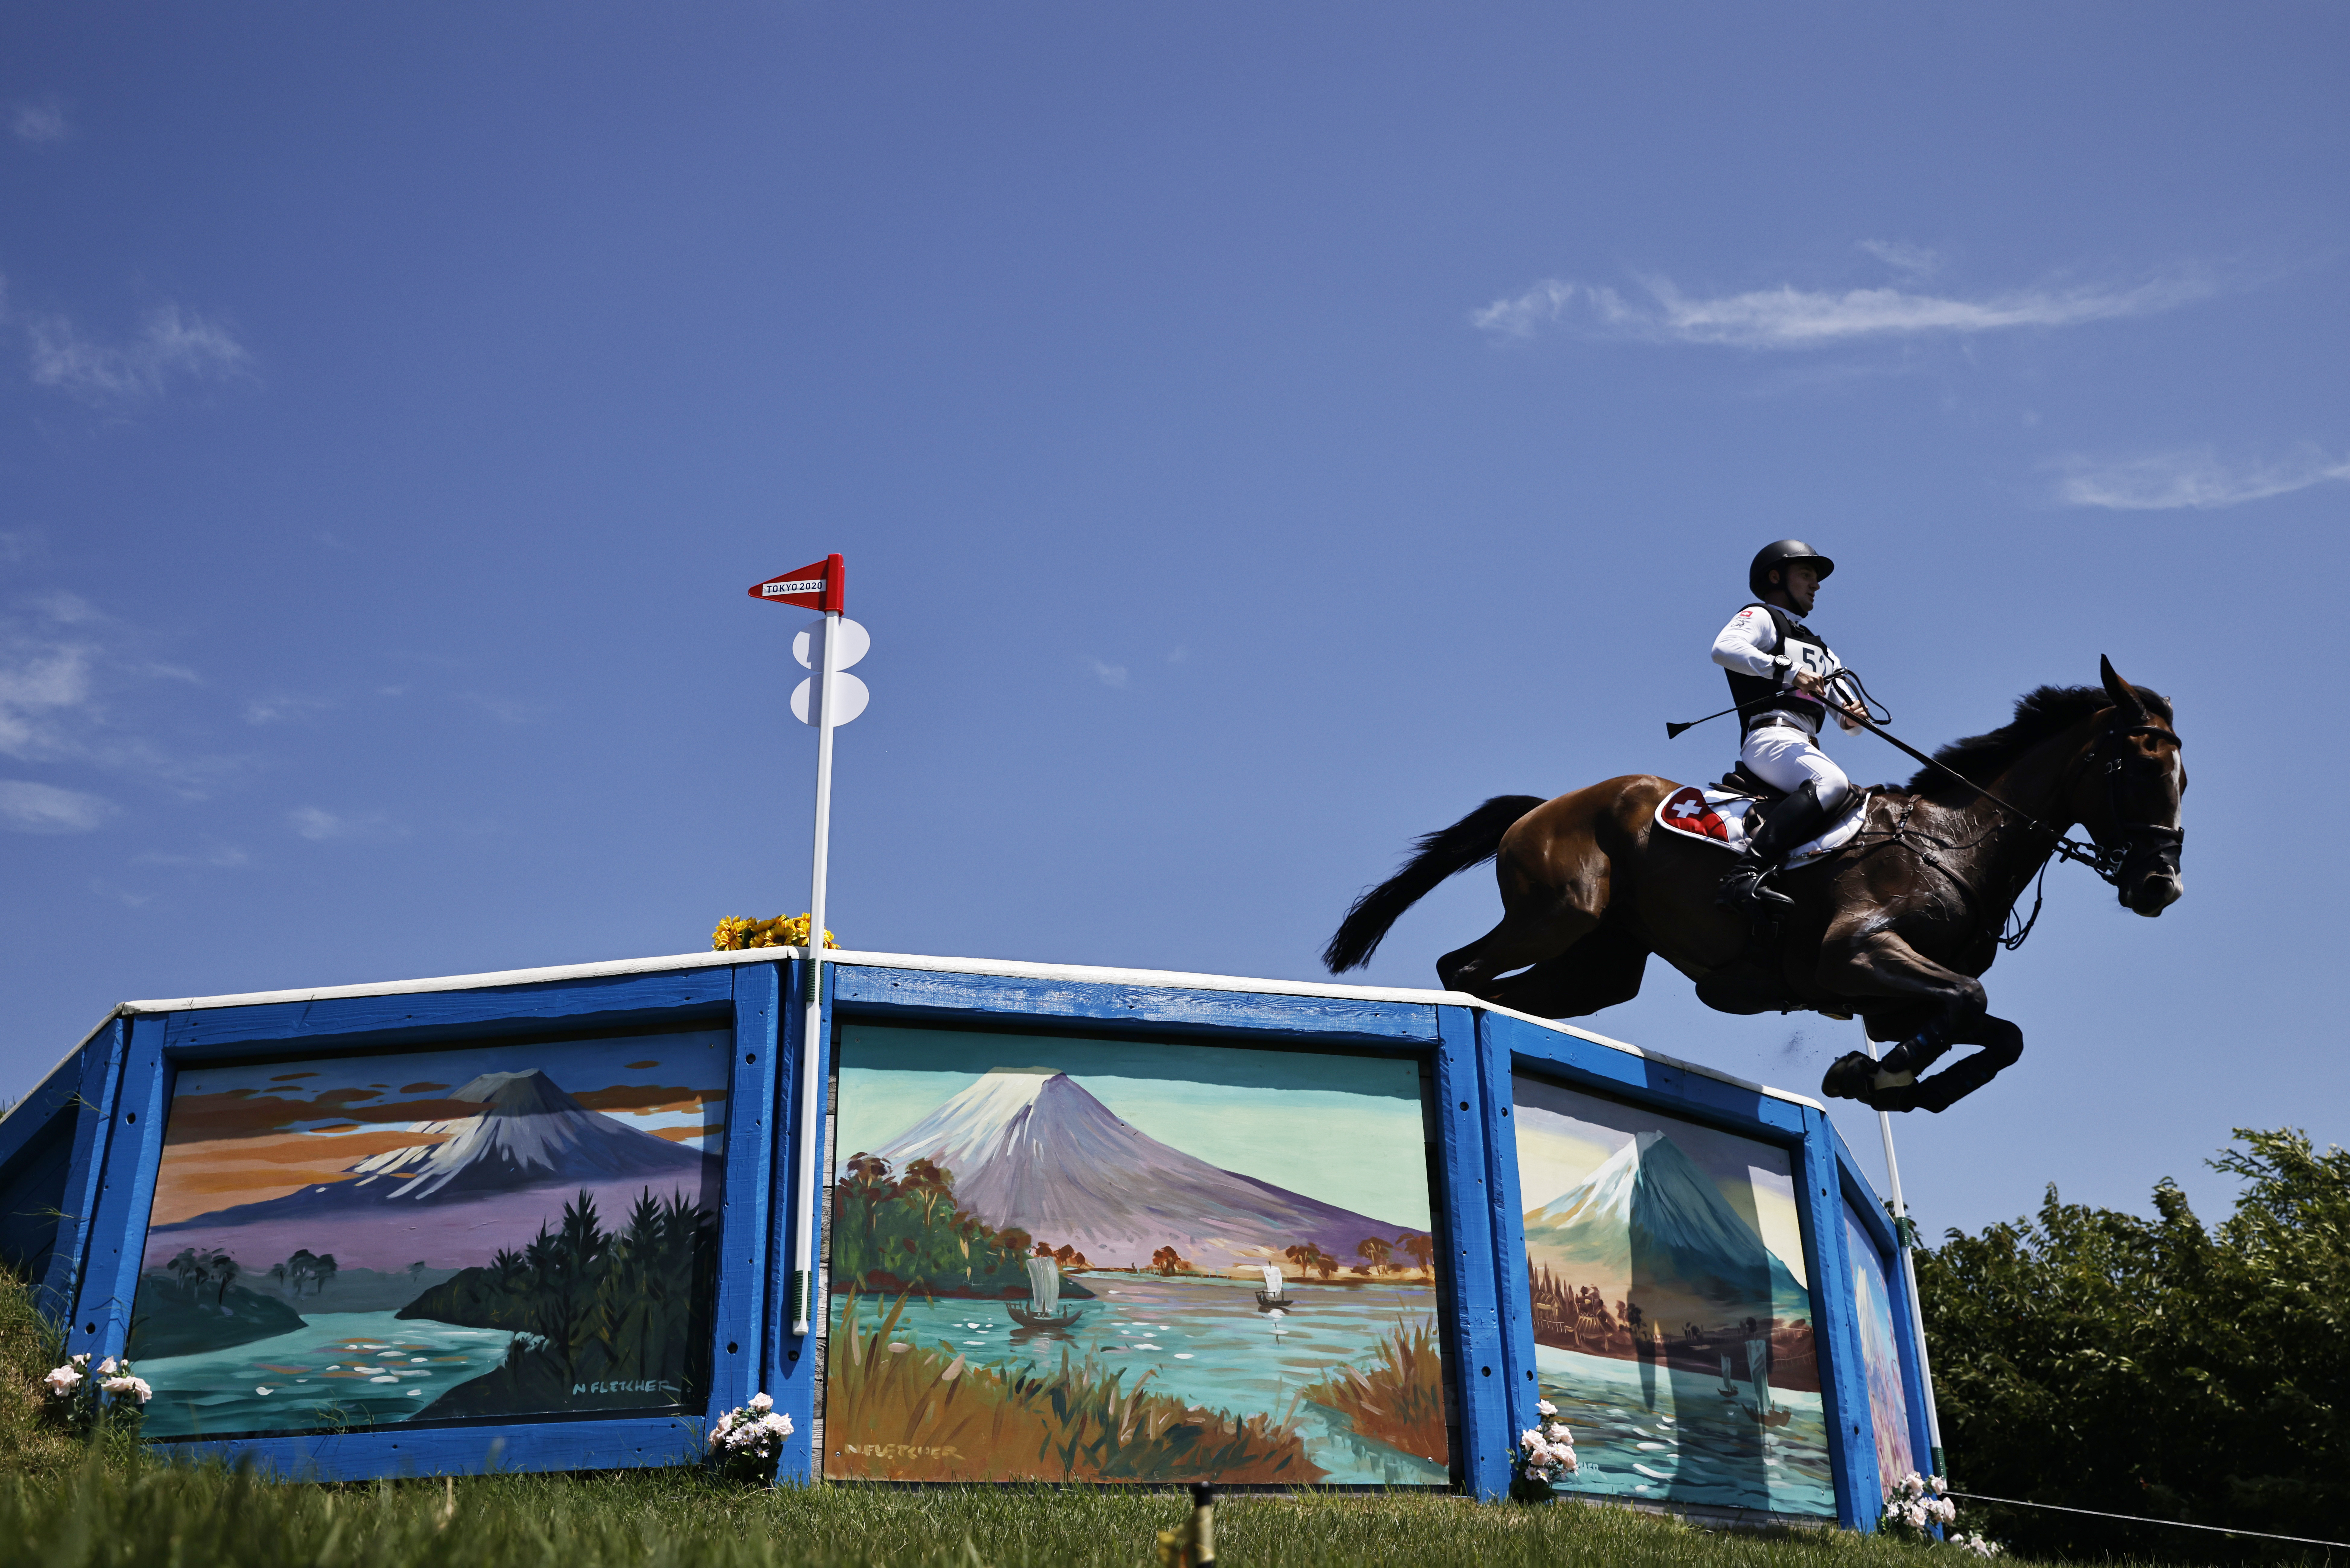 Tokyo 2020 Olympics - Equestrian - Eventing - Cross Country Individual - Final - Sea Forest XC Course - Tokyo, Japan - August 1, 2021. Robin Godel of Switzerland on his horse Jet Set compete REUTERS/Alkis Konstantinidis